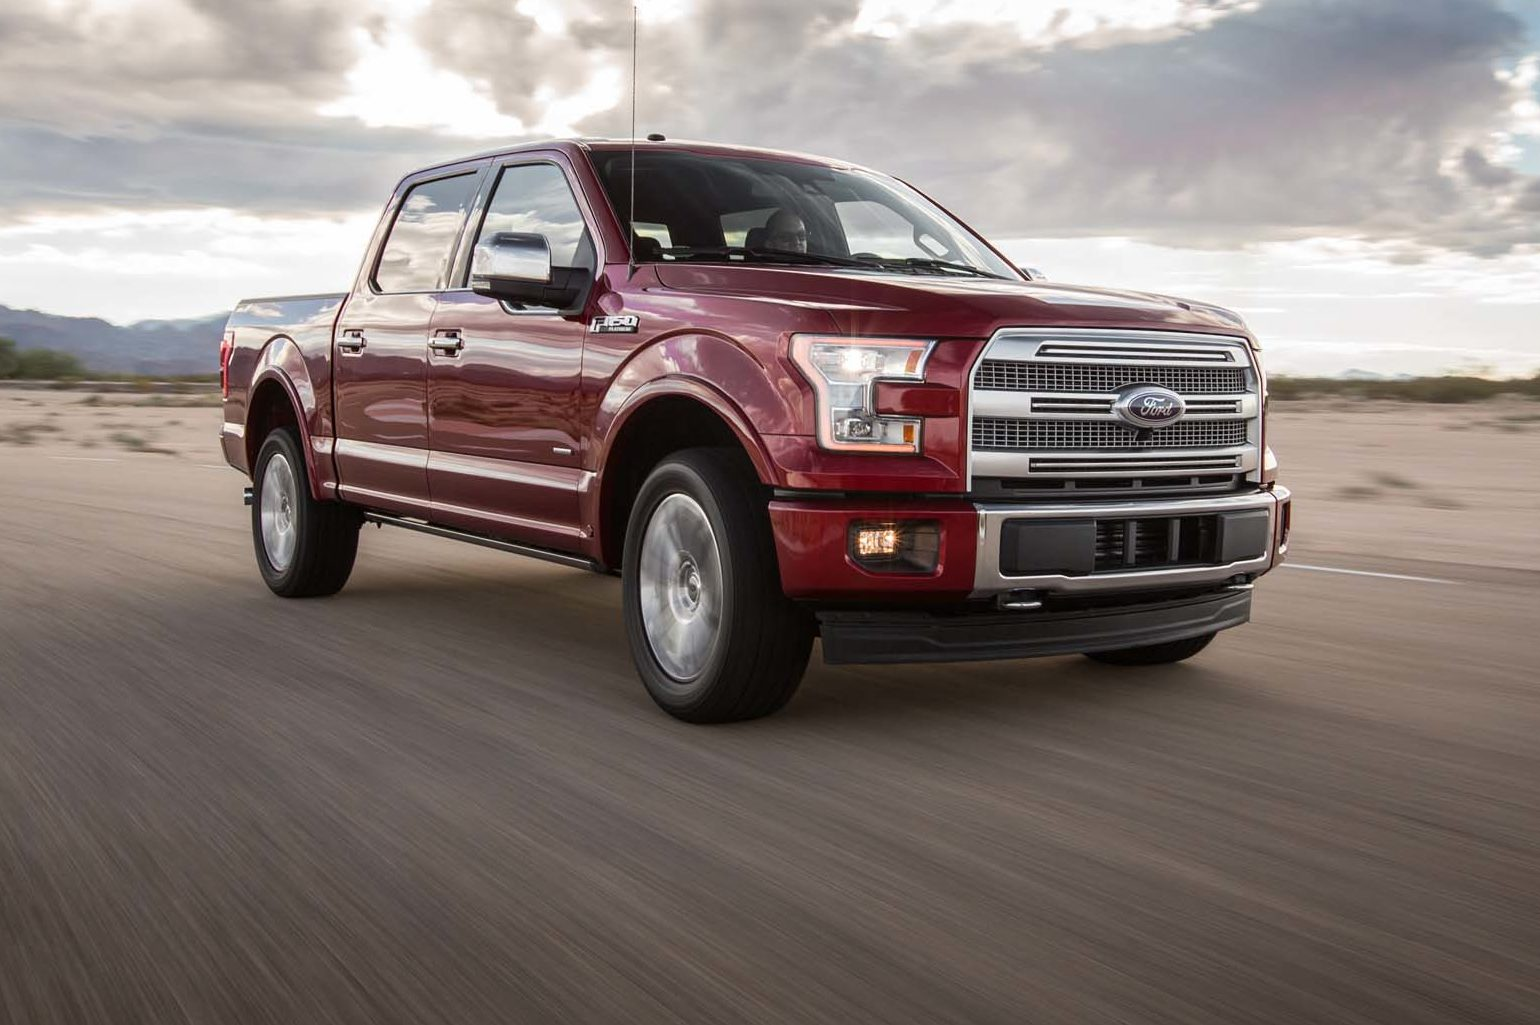 2017 Ford F 150 Platinum 4x4 EcoBoost Front Three Quarter In Motion 03 E1477965068208